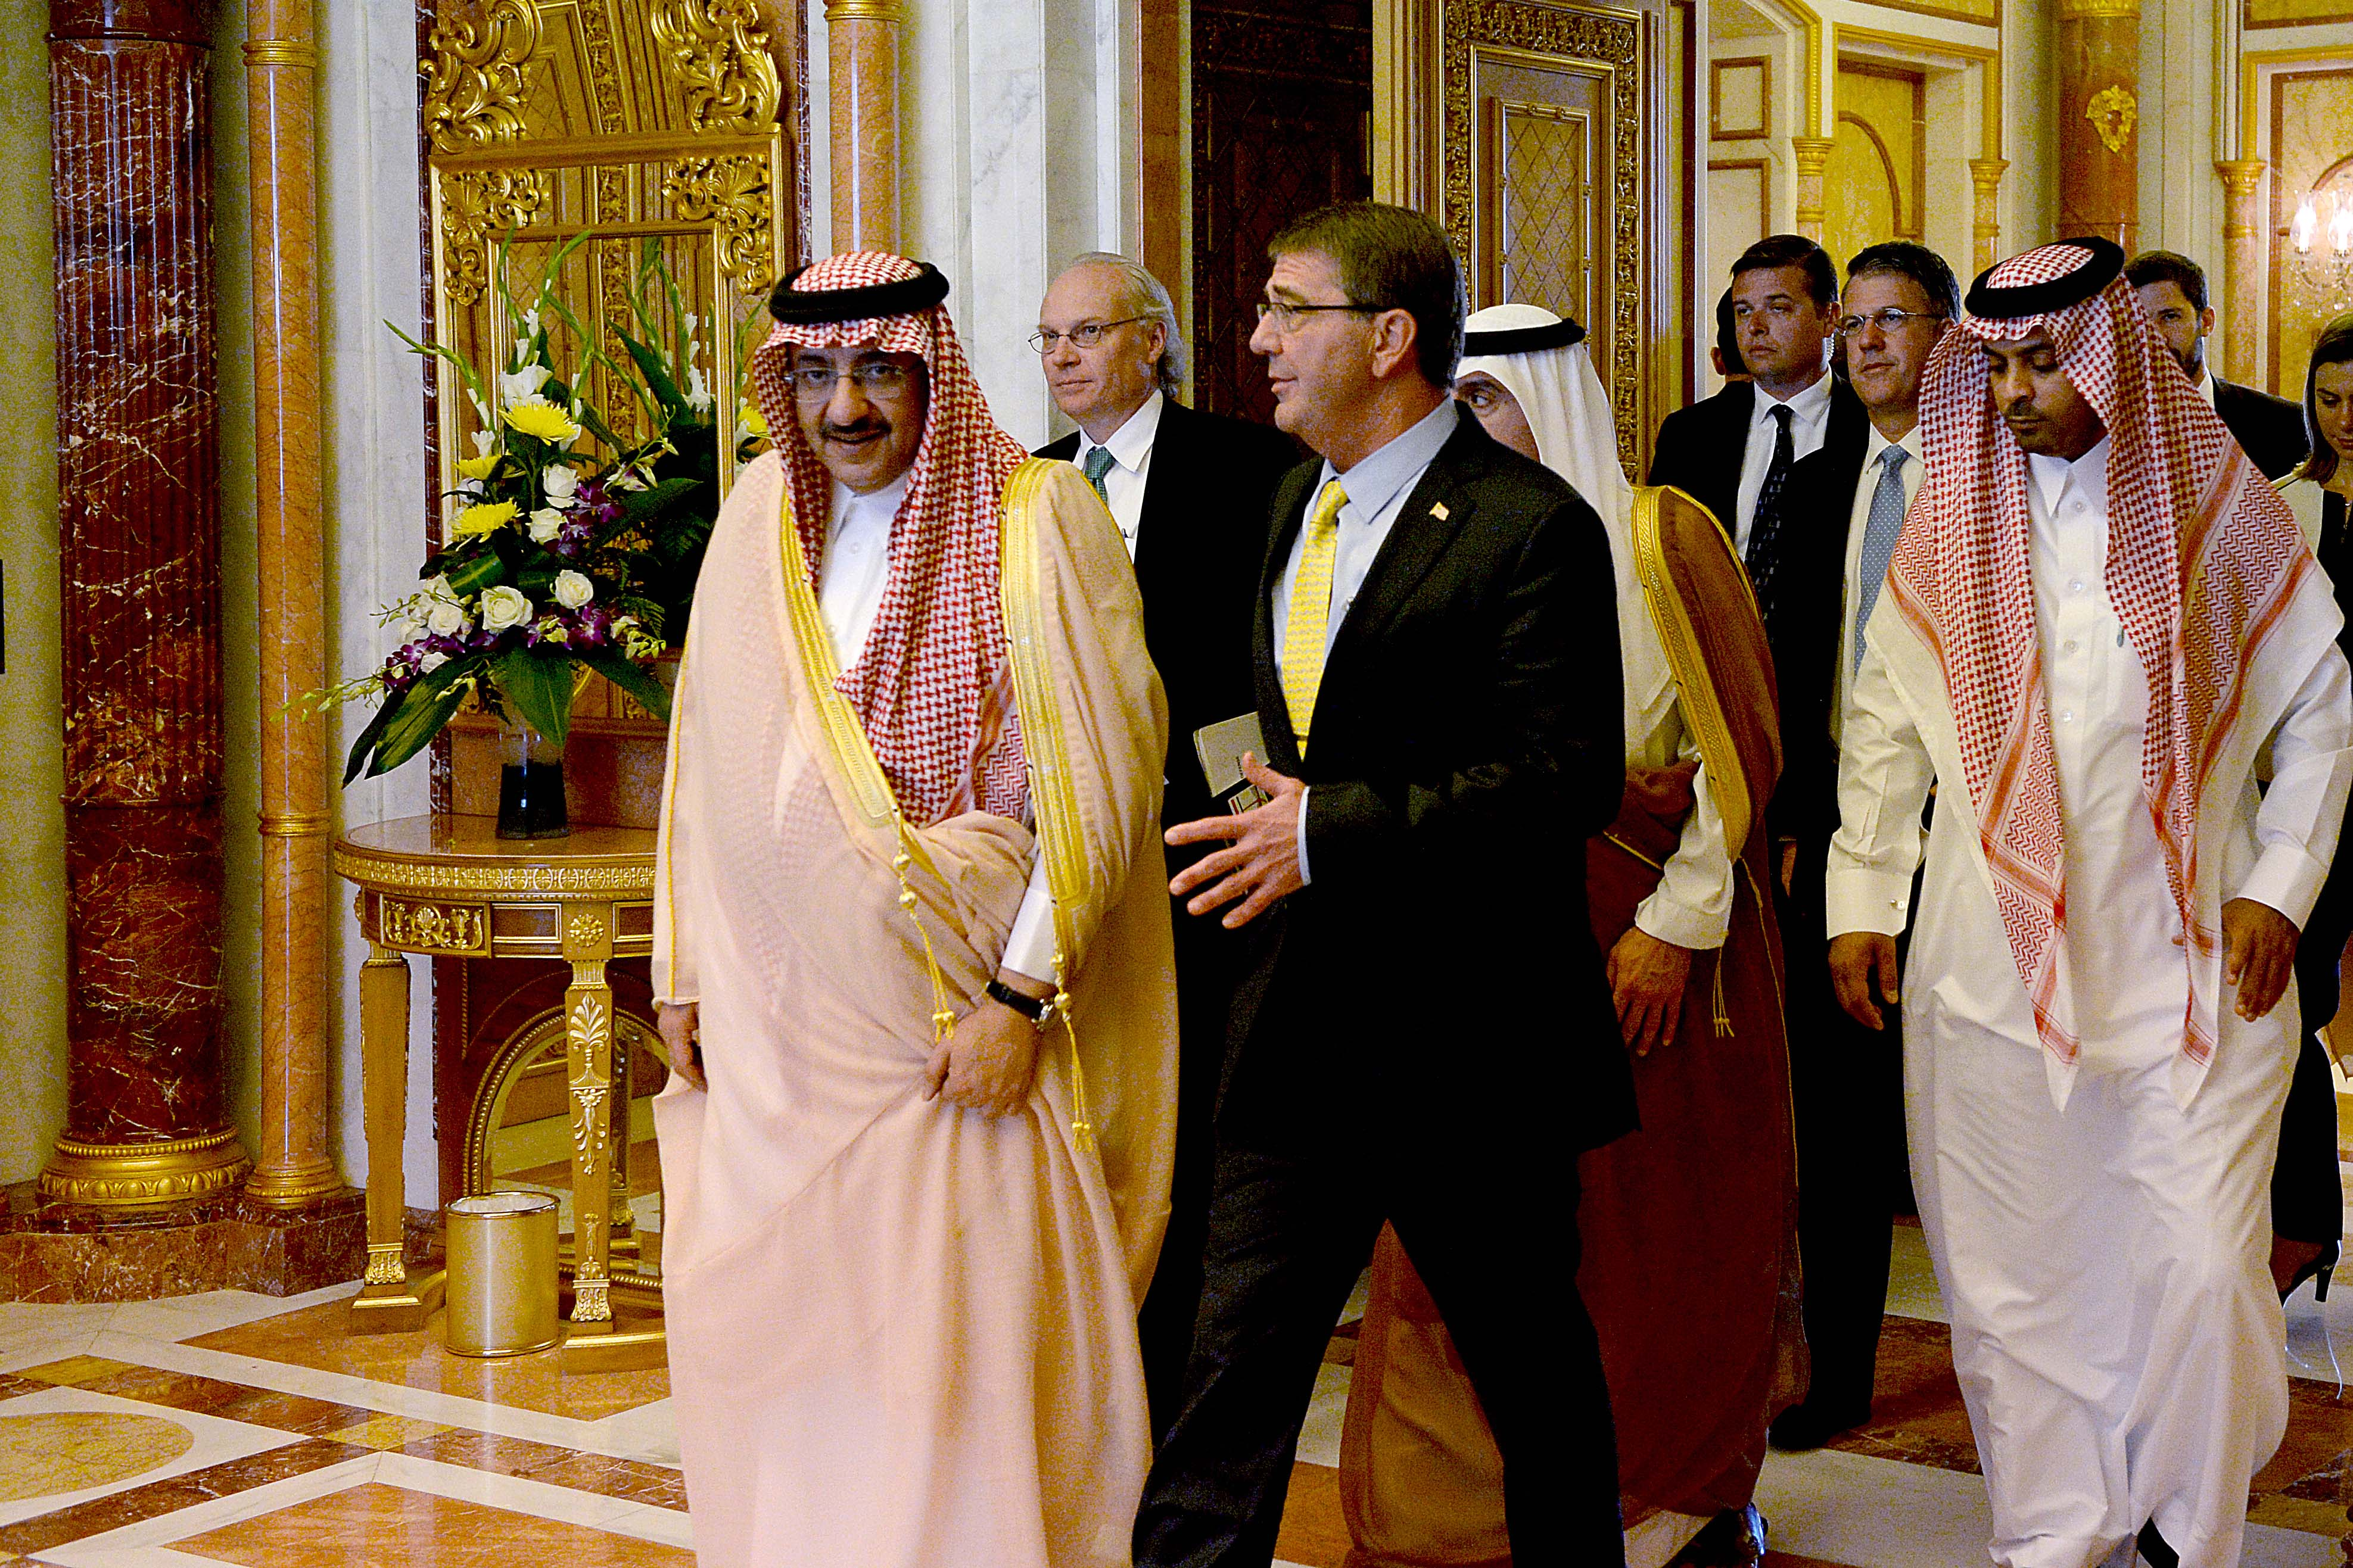 Secretary of Defense Ash Carter meets with King Salman Abdulaziz on July 22, 2015.Carter and The King of Saudi Arabia meets to discuss issues of importance. (DoD photo by U.S. Army Sgt. 1st Class Clydell Kinchen) (Released)